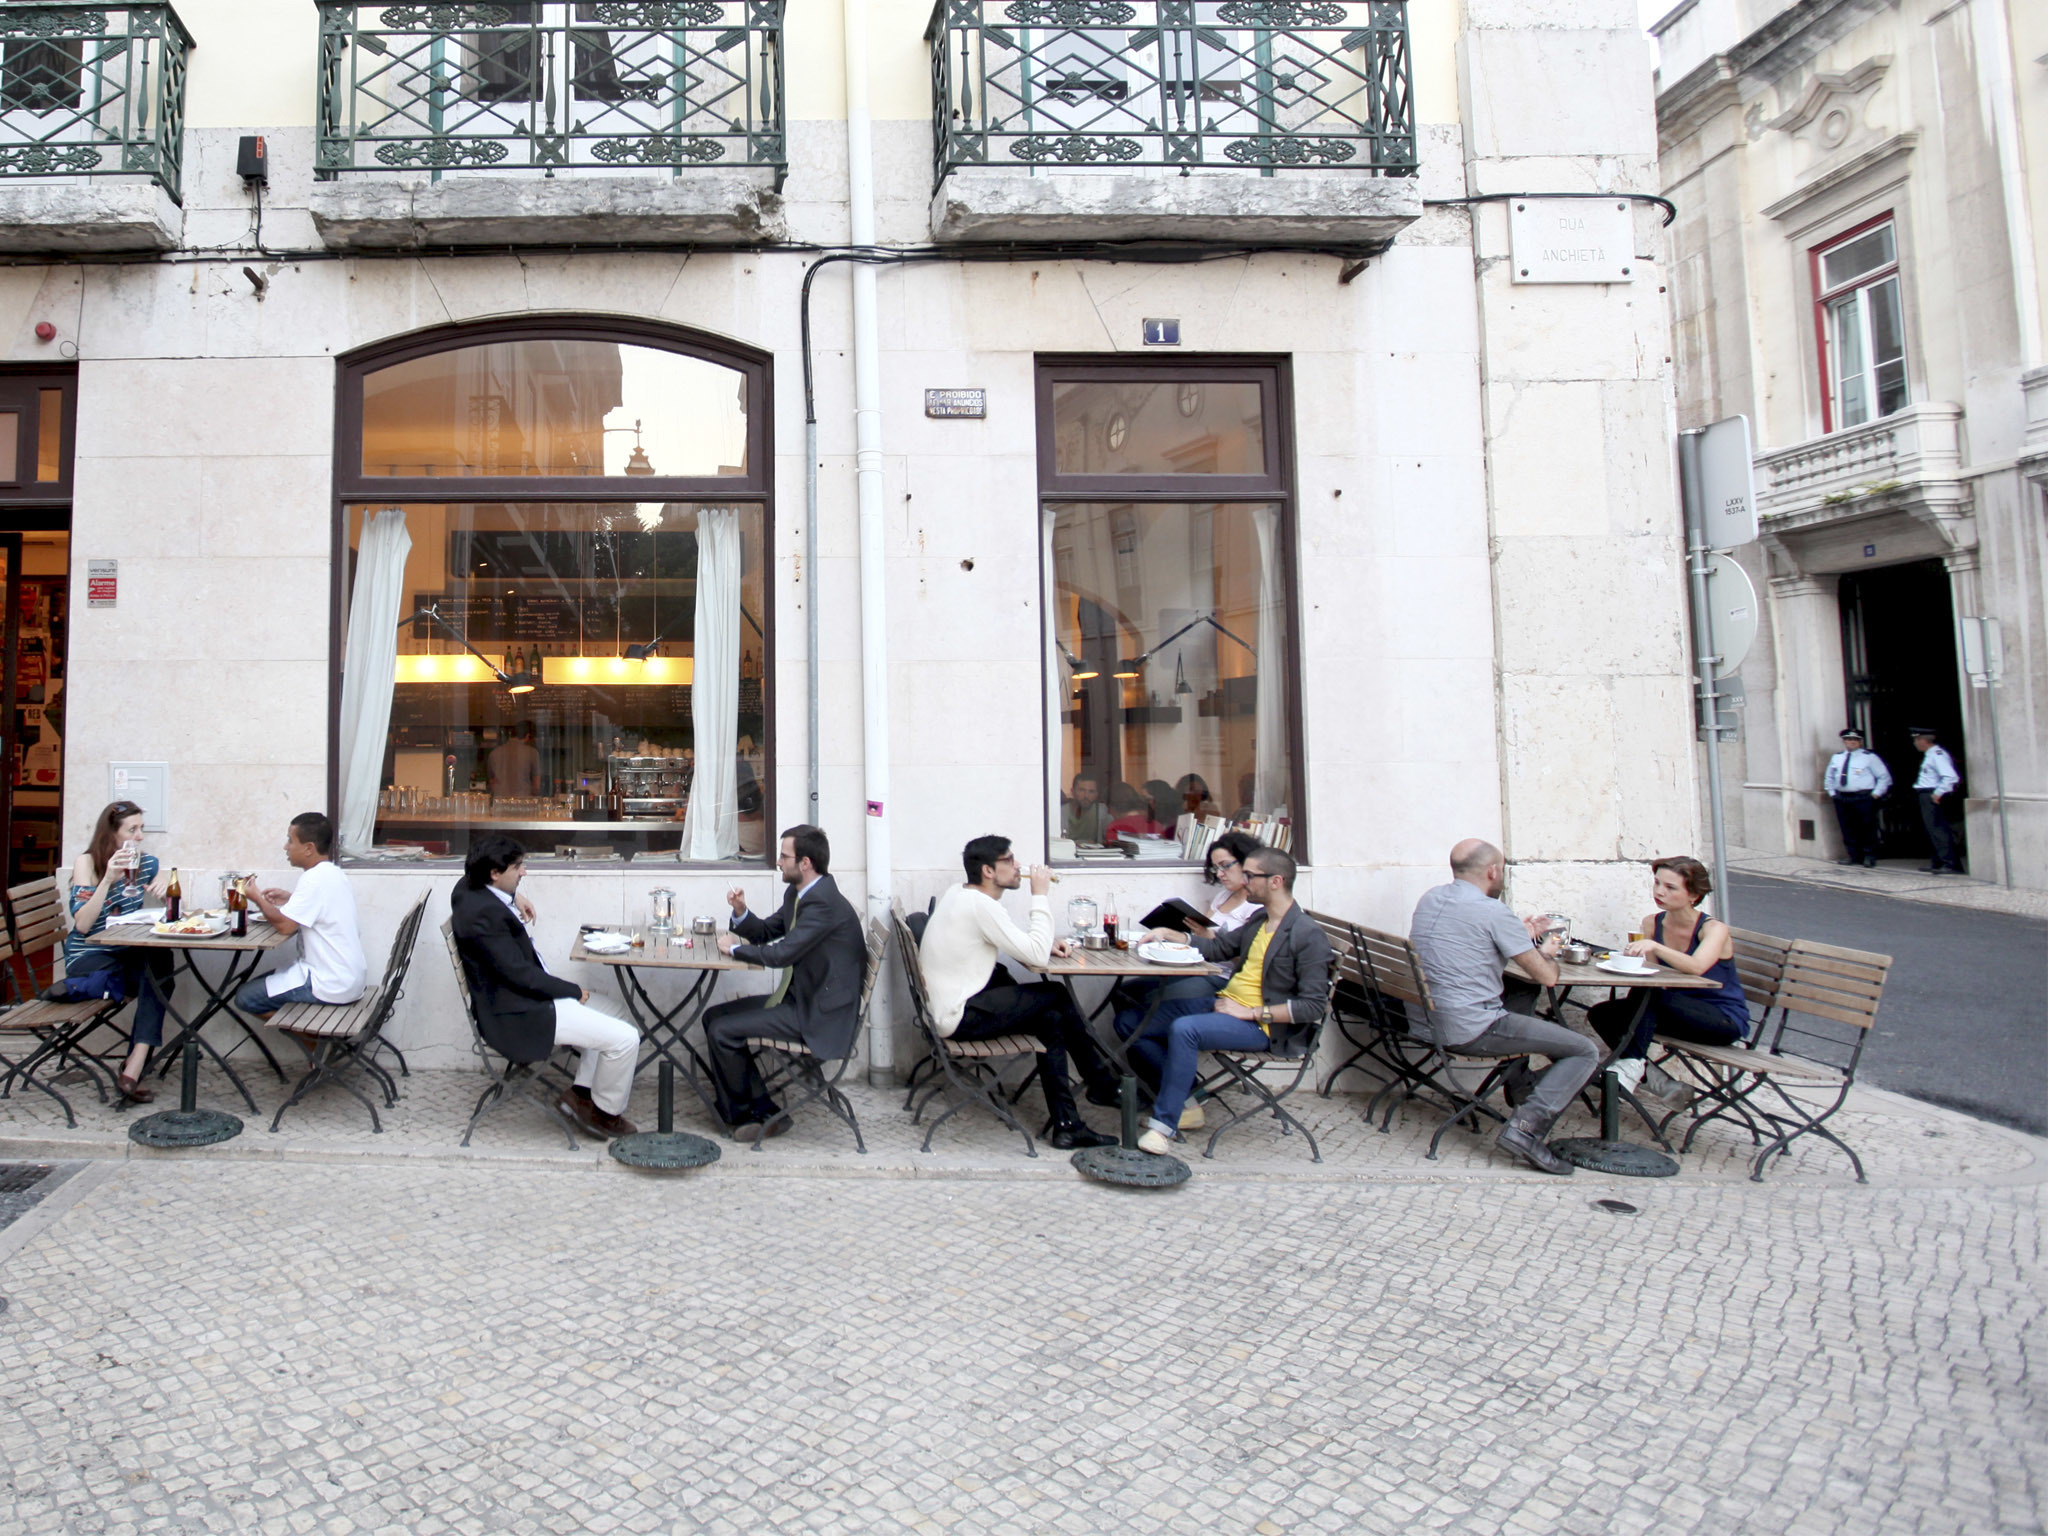 Looking for things to do in Lisbon? How about a drink?